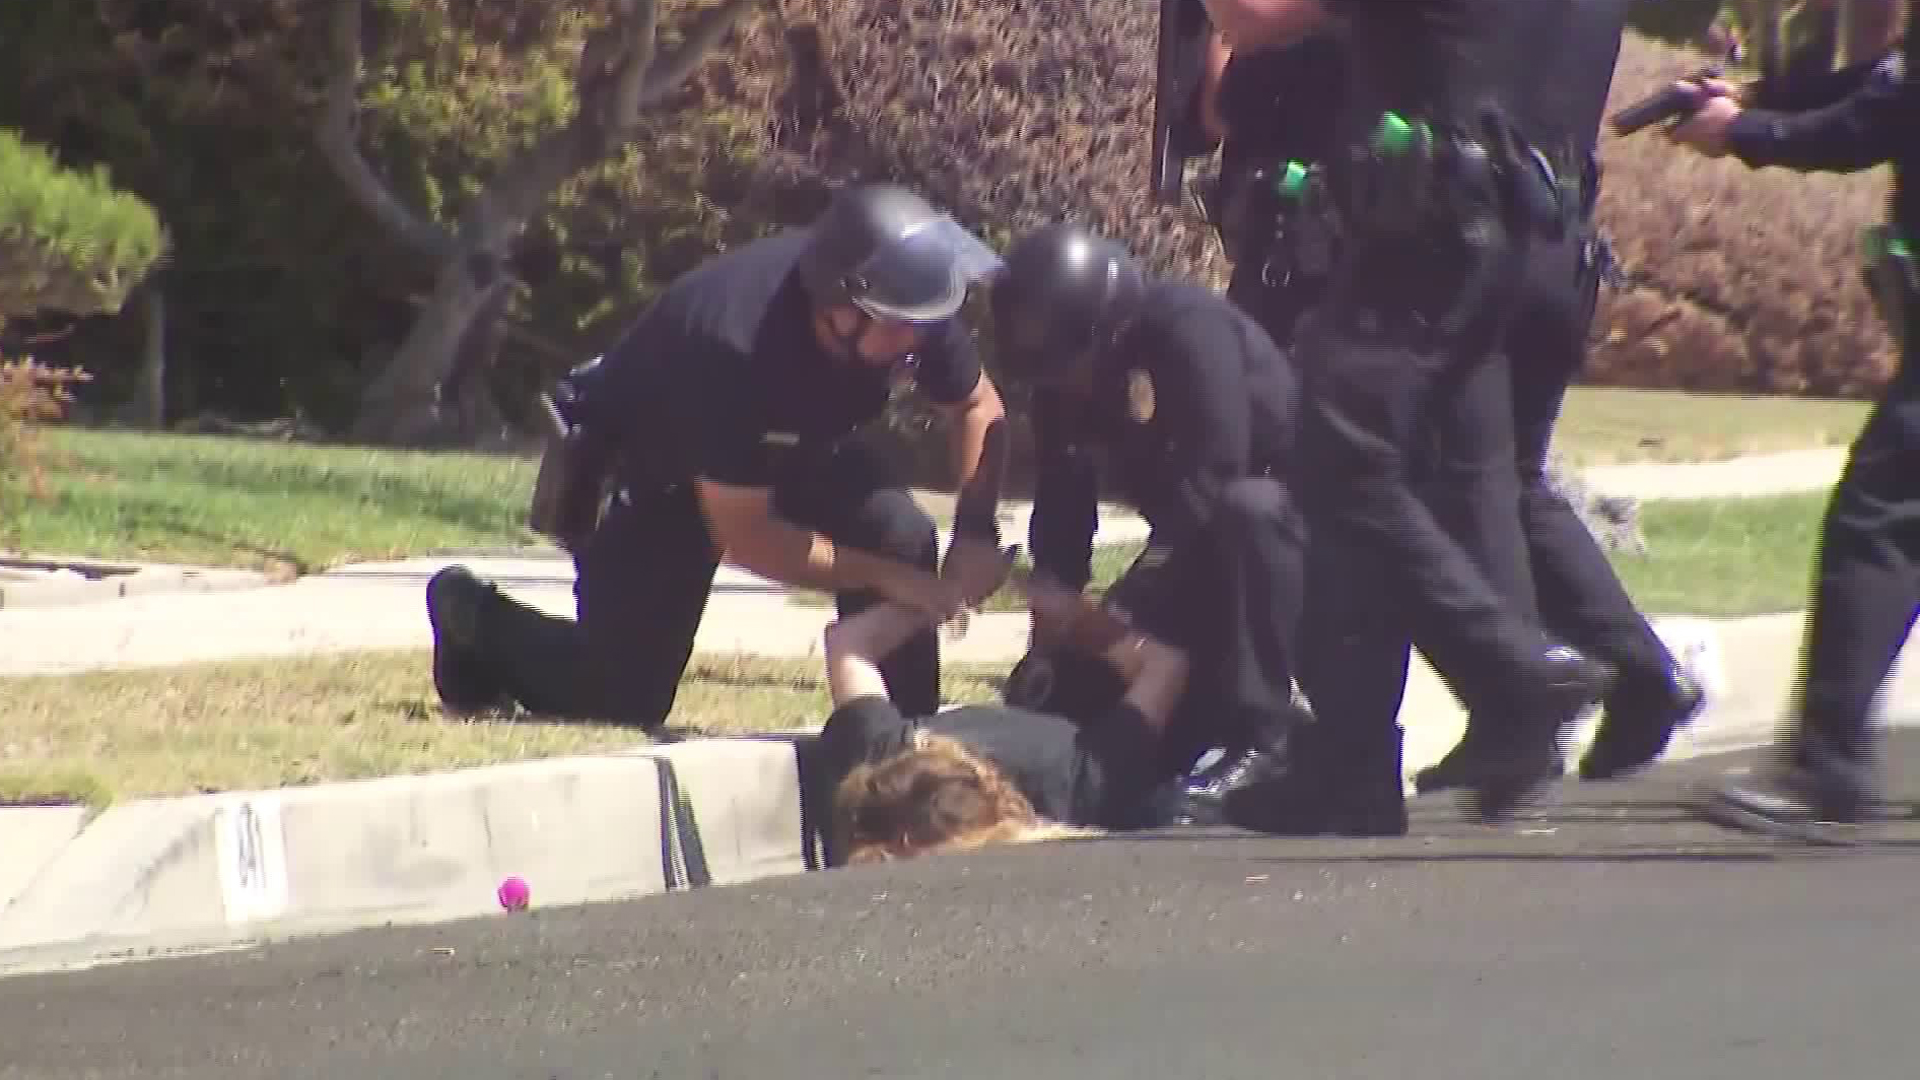 A woman is detained outside a home in the Harbor Gateway neighborhood in connection with a homicide investigation on Sept. 12, 2018. (KTLA)